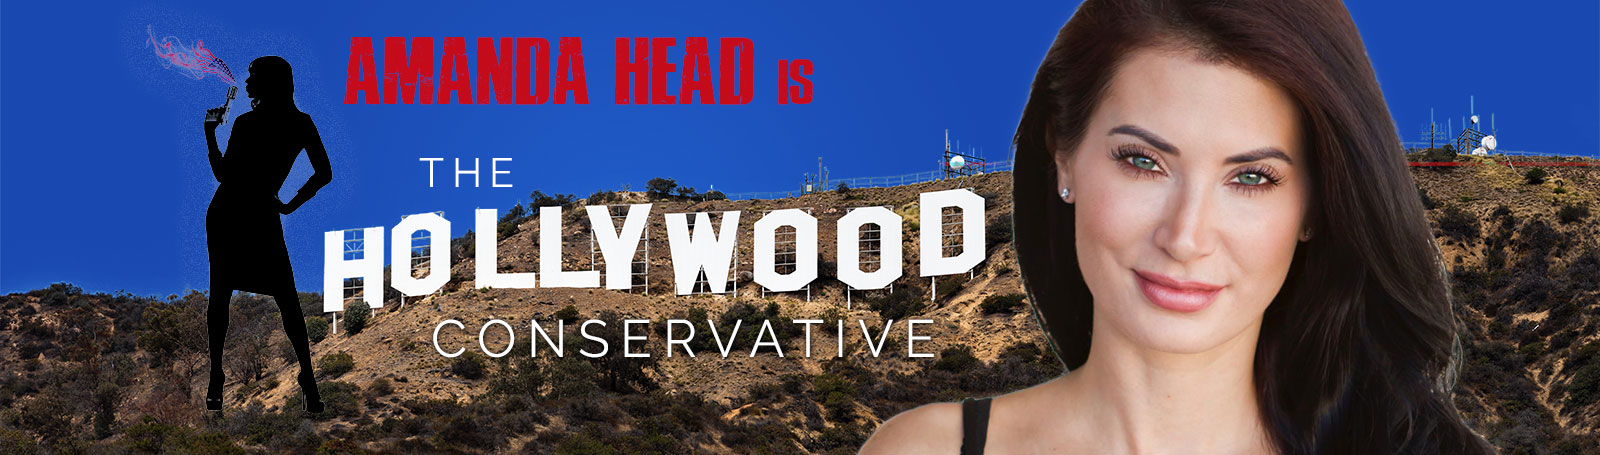 The Hollwood Conservative